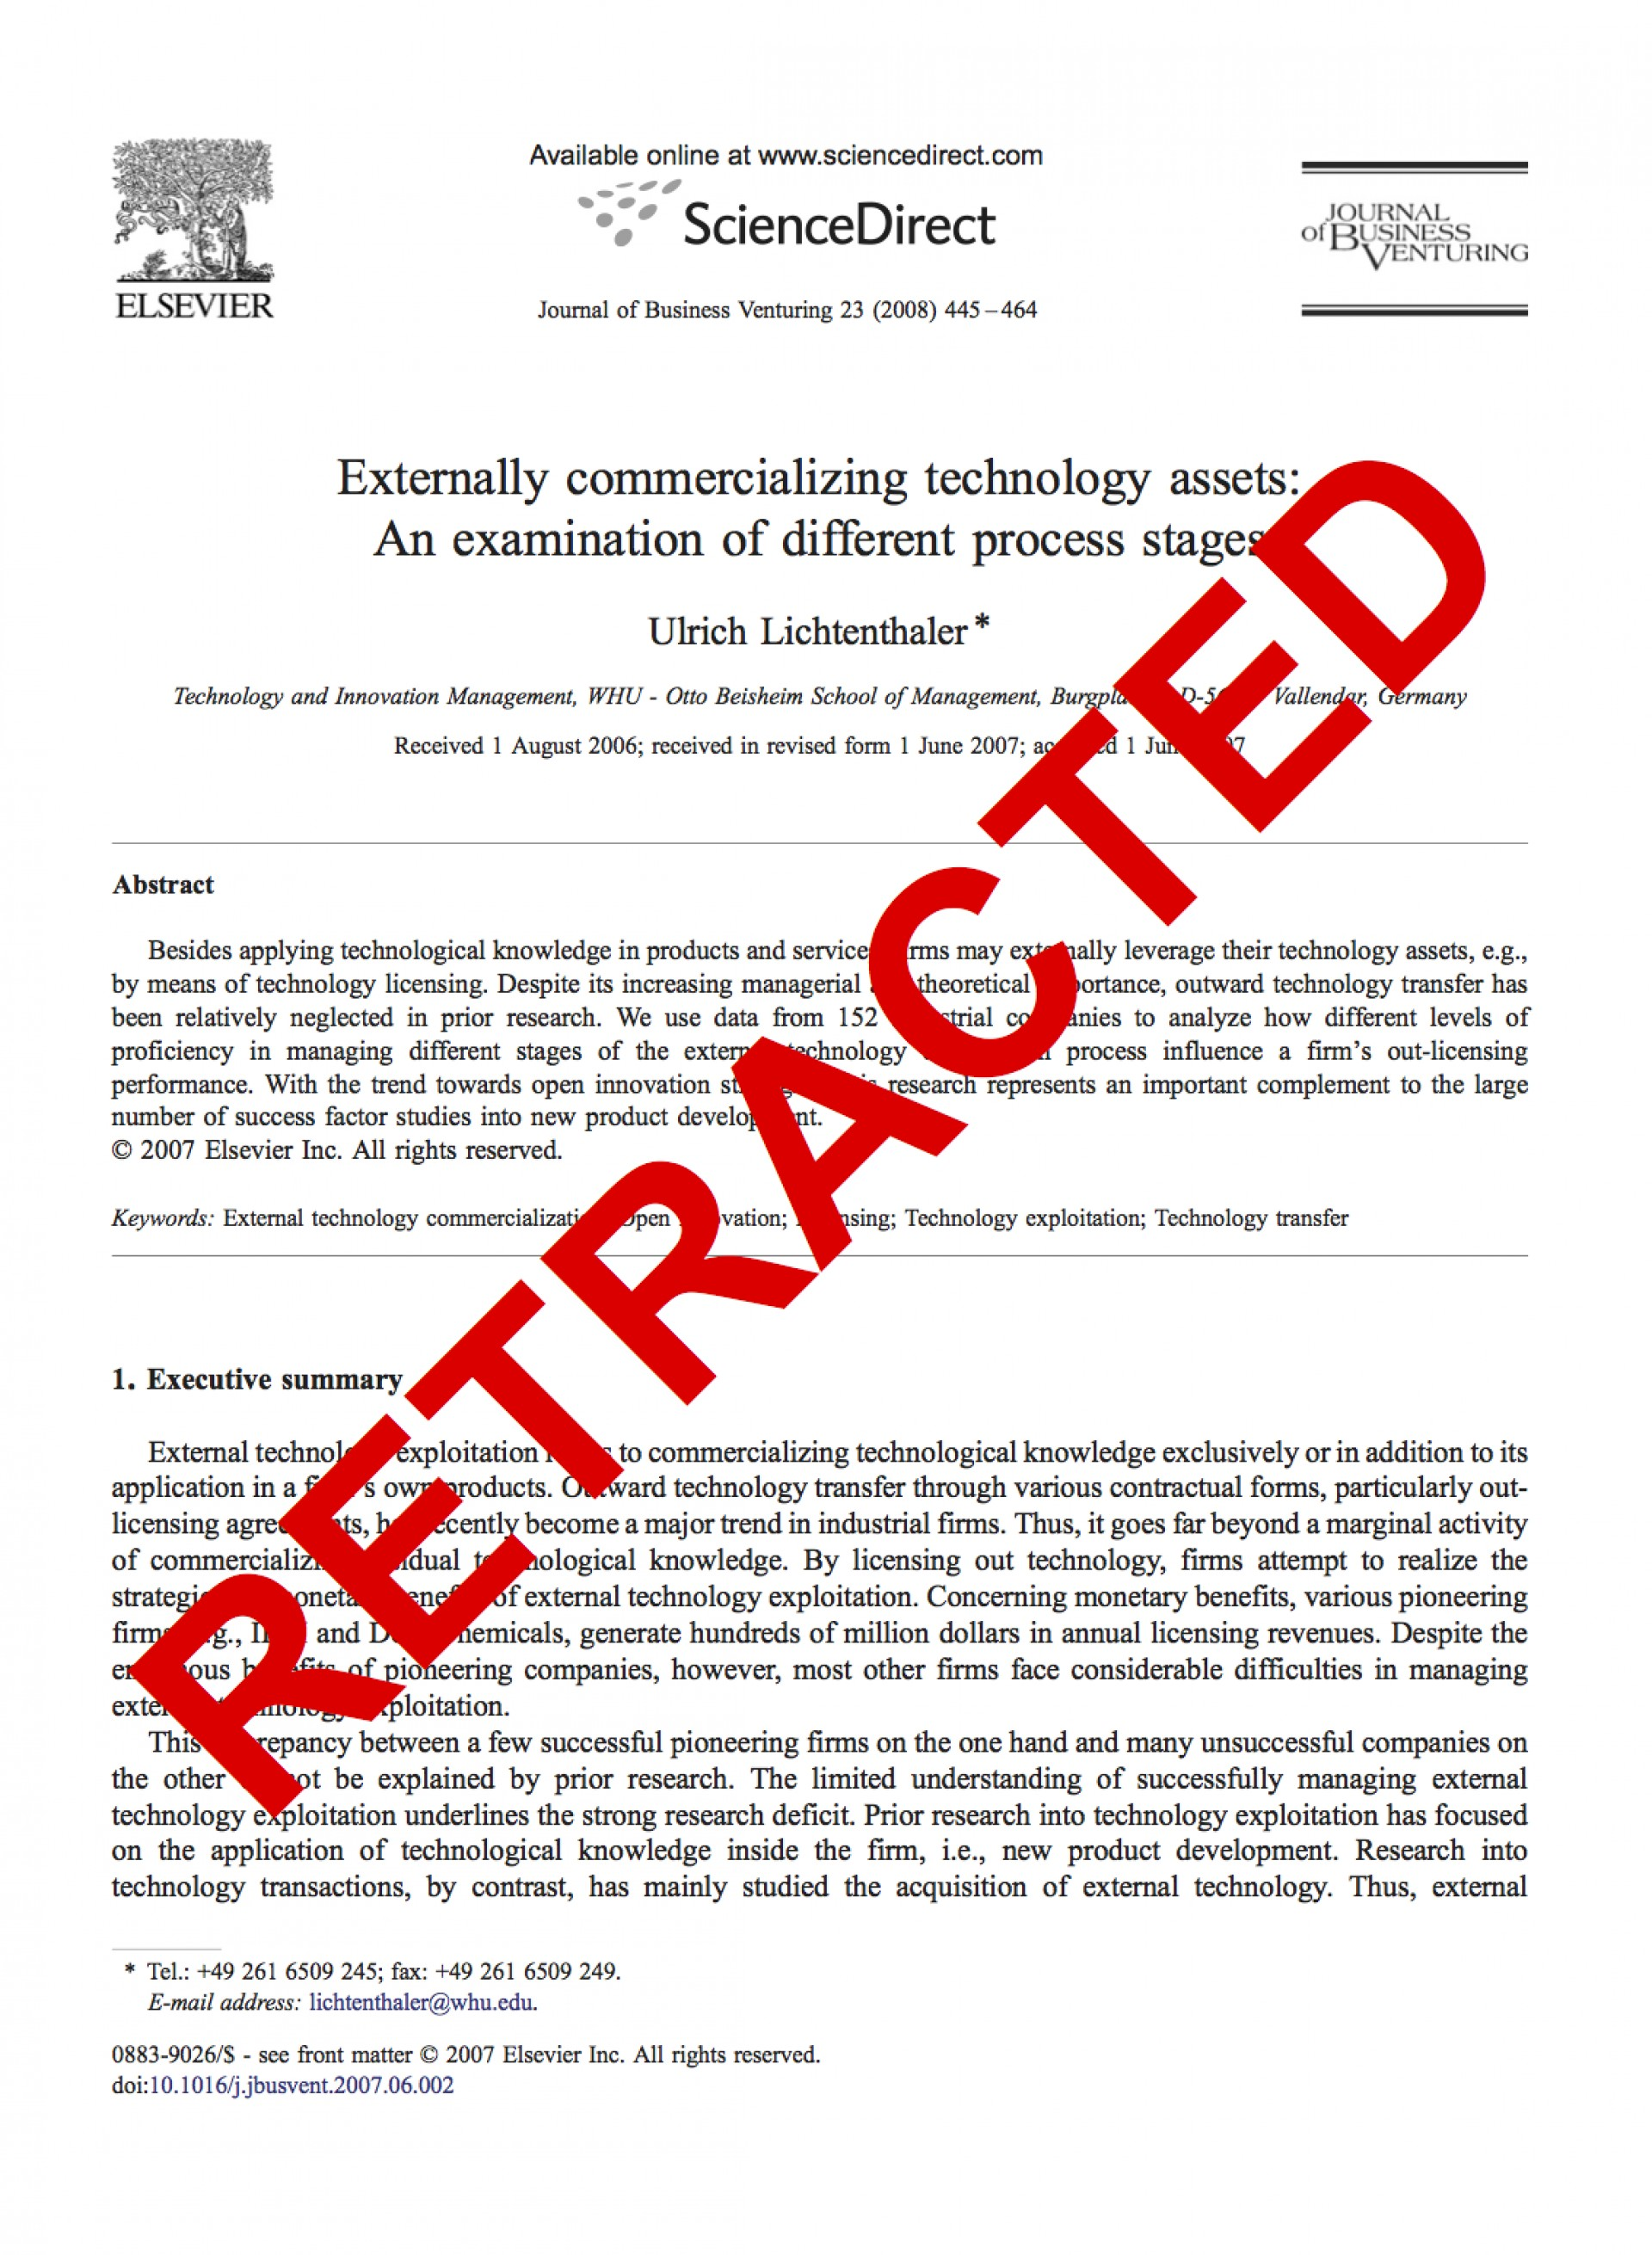 008 Research Paper 2010jbv Lichtenthalerretracted Can You Buy Amazing Papers 1920